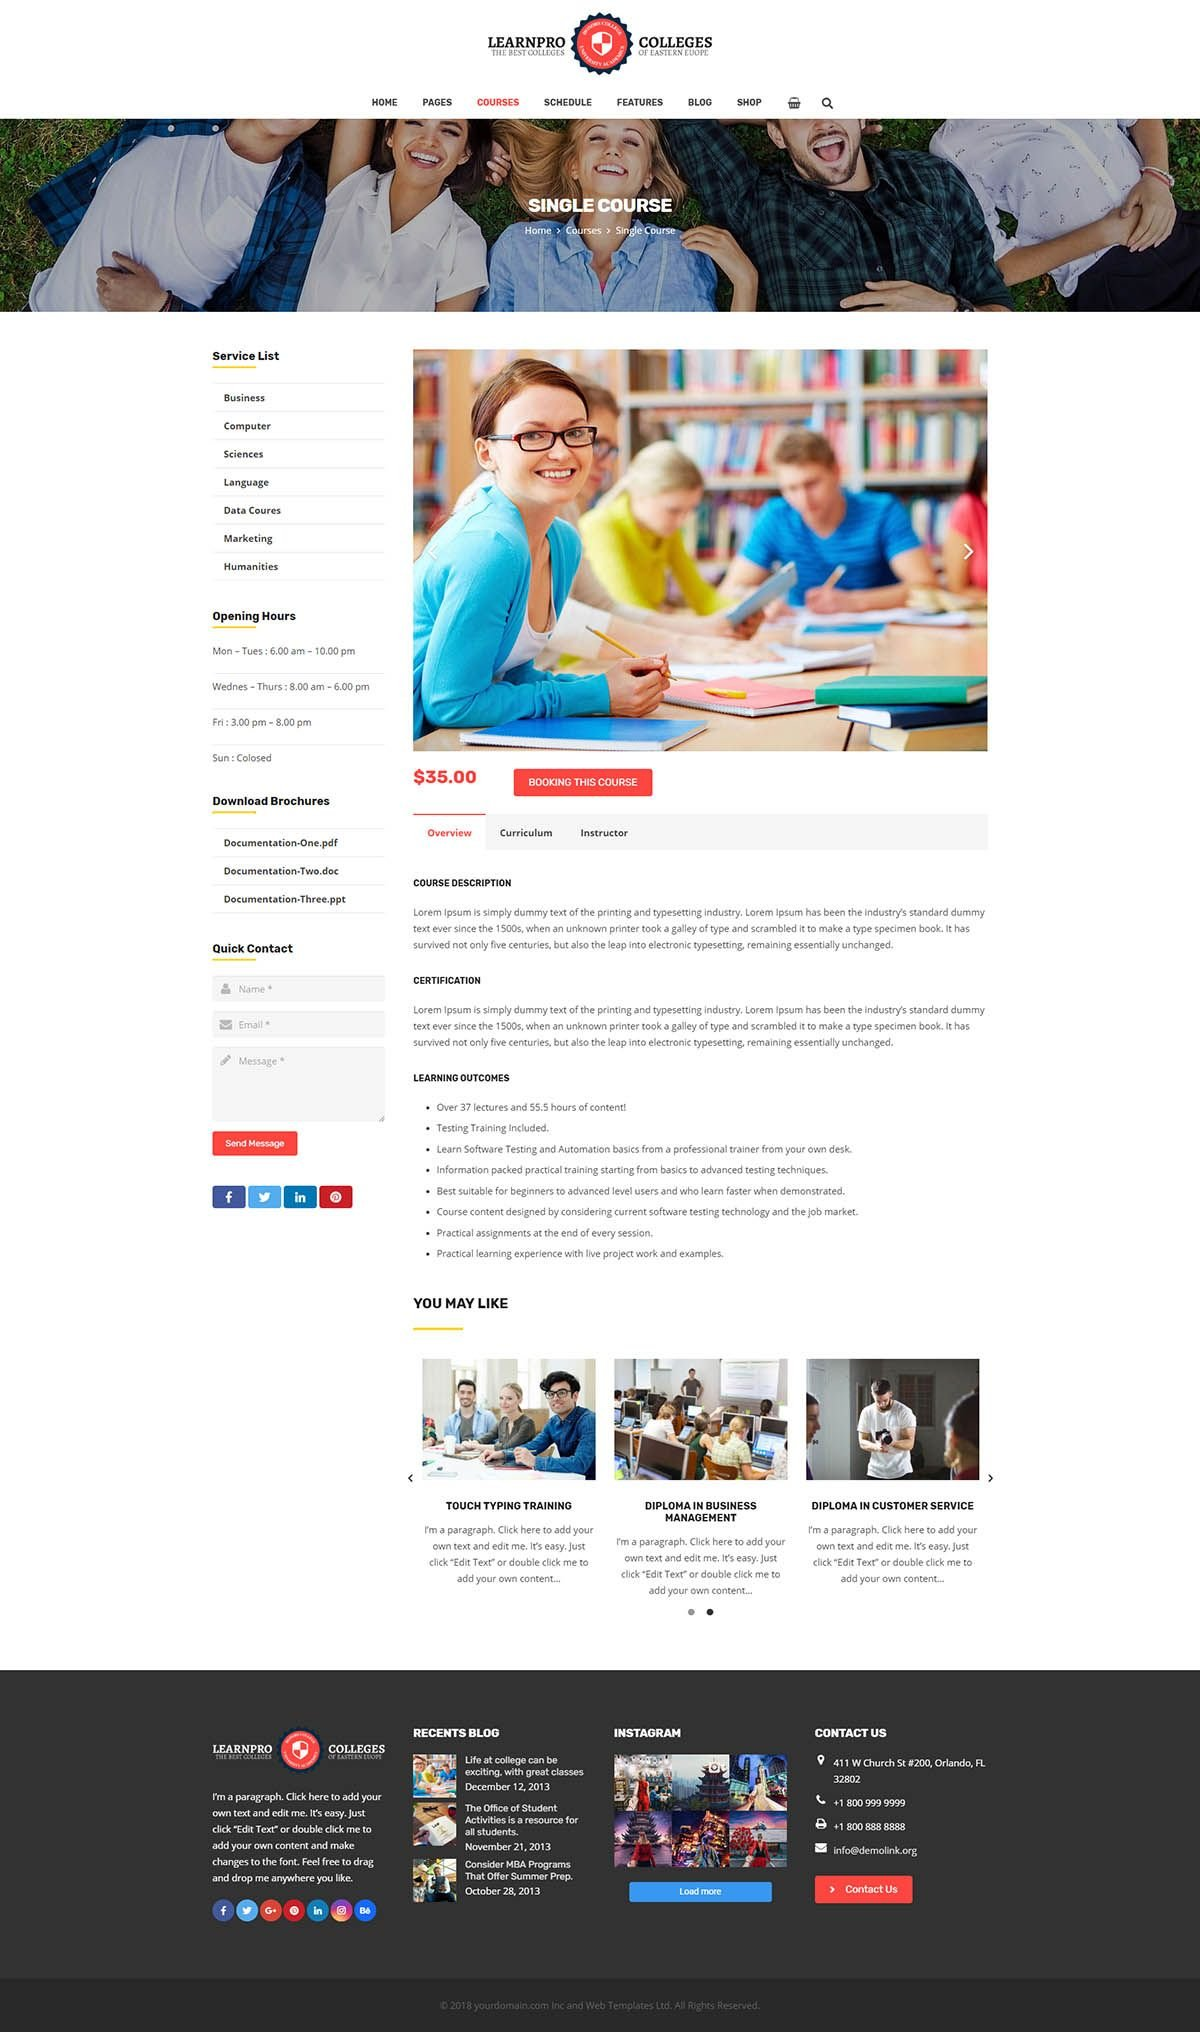 Learnpro - Education WordPress Theme Screenshot 4